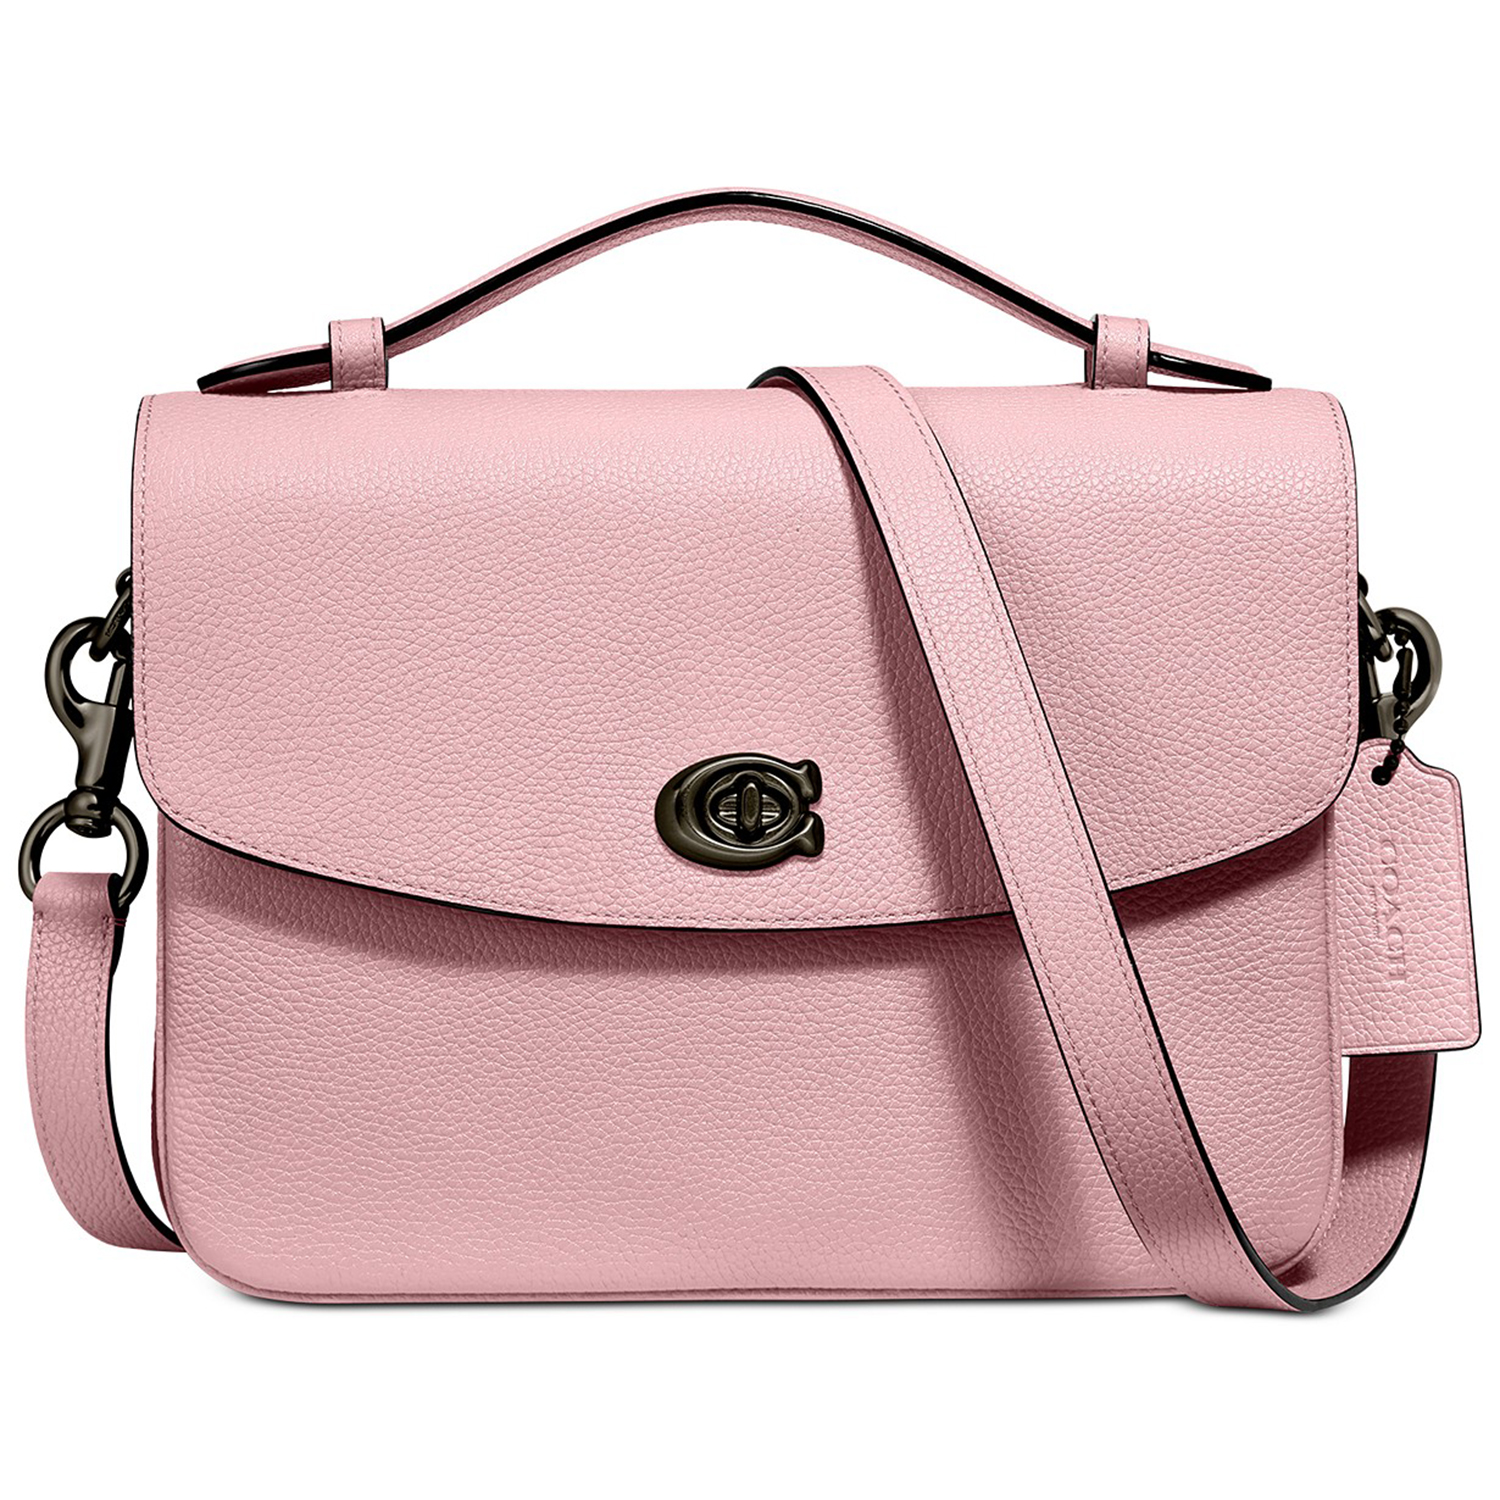 COACH Cassie Crossbody In Polished Pebble Leather